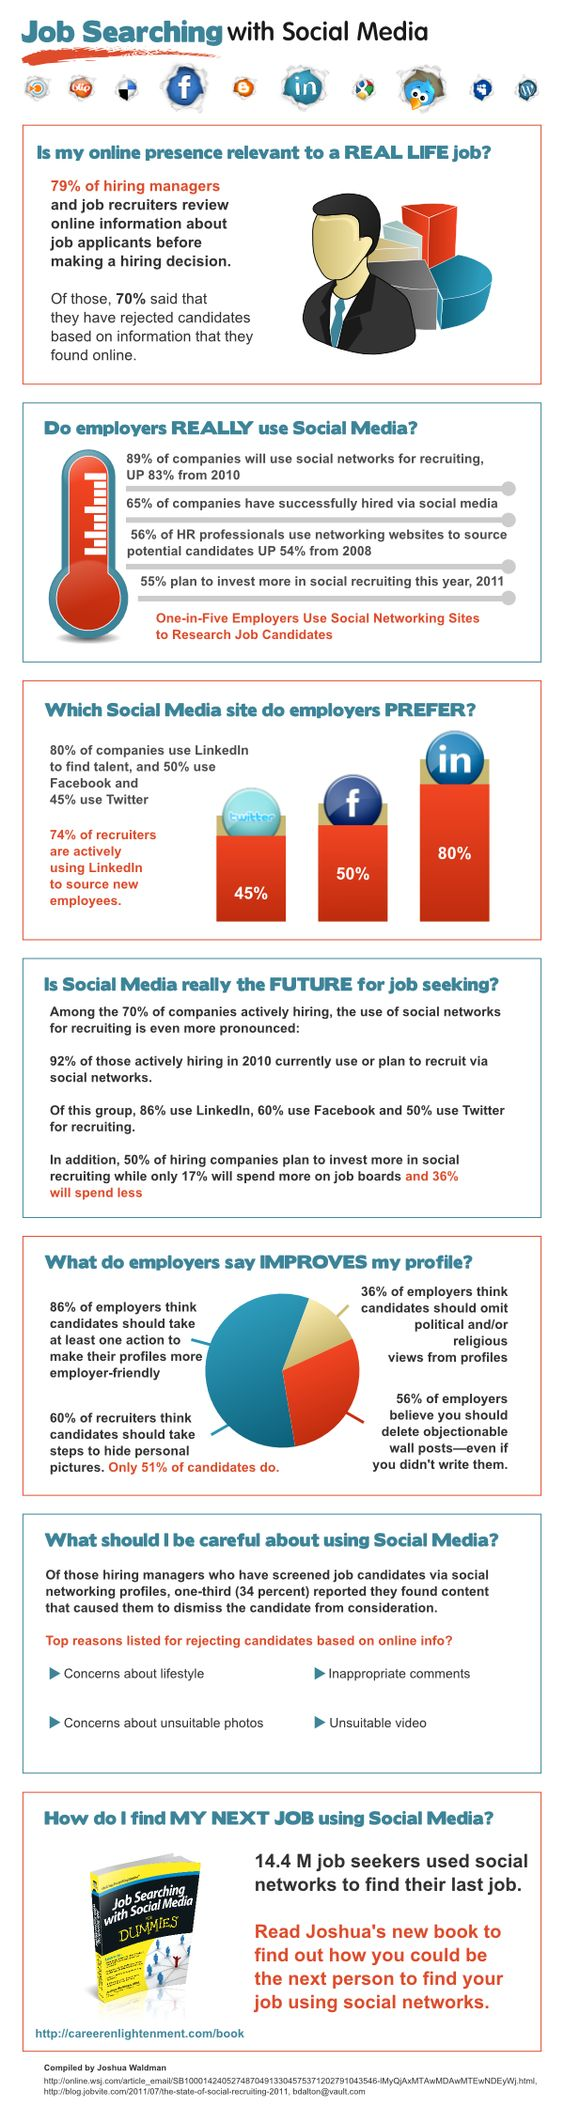 Job Searching with Social Media